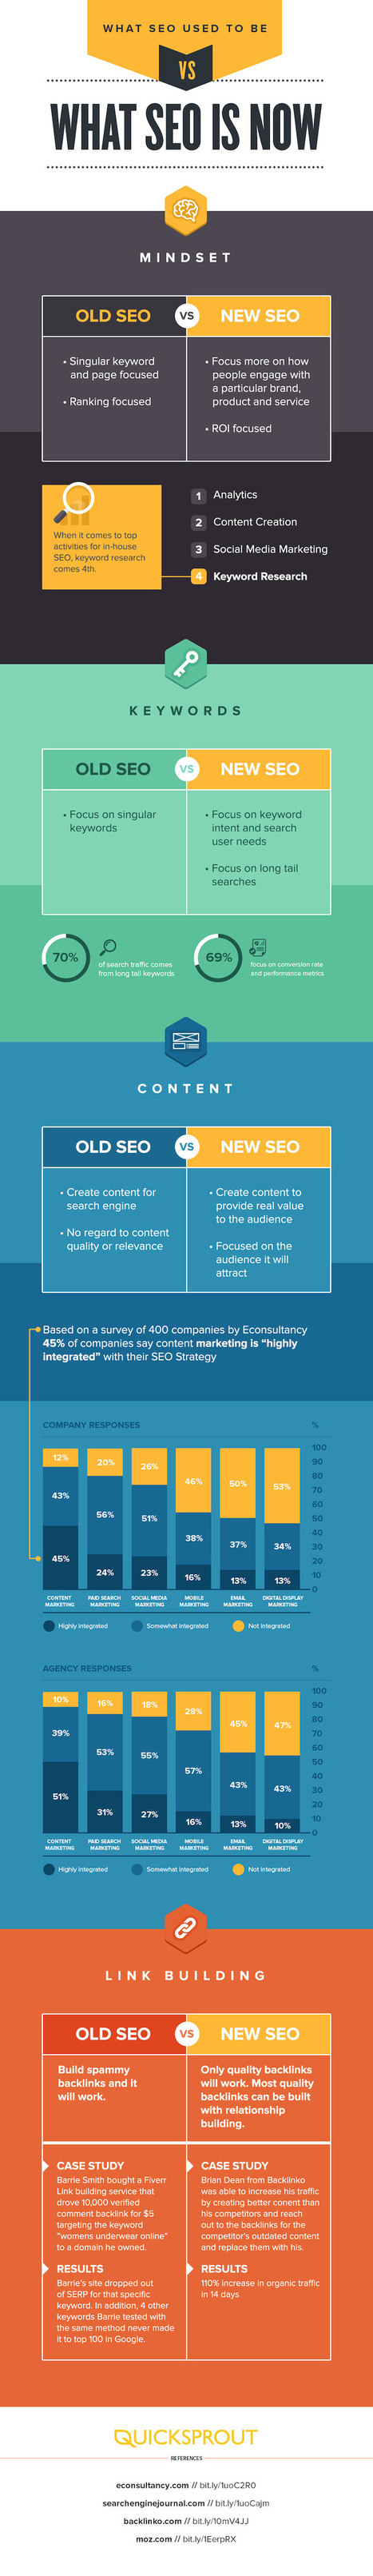 The Old SEO Versus The New SEO [INFOGRAPHIC] | Digital Marketing | Scoop.it